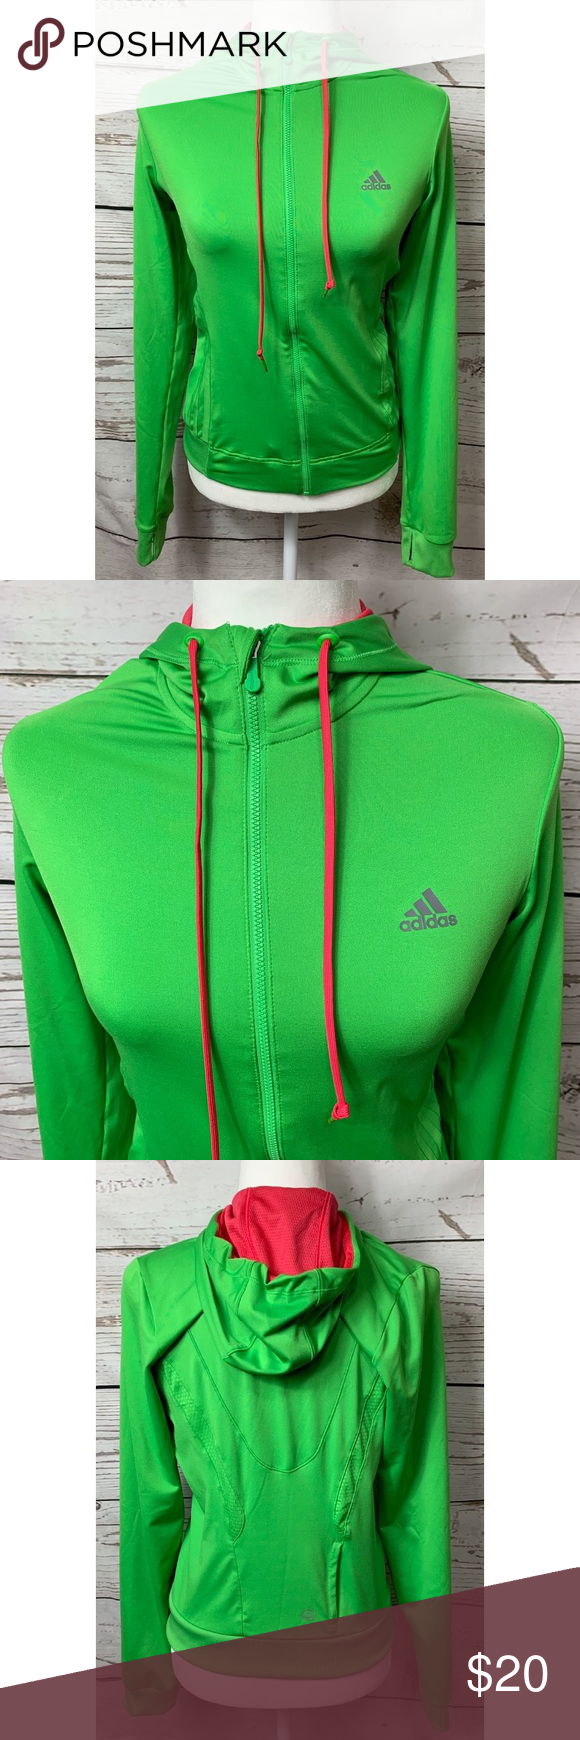 ADIDAS Olive Green Solid Z.N.E Fast Release Hooded Sweatshirt